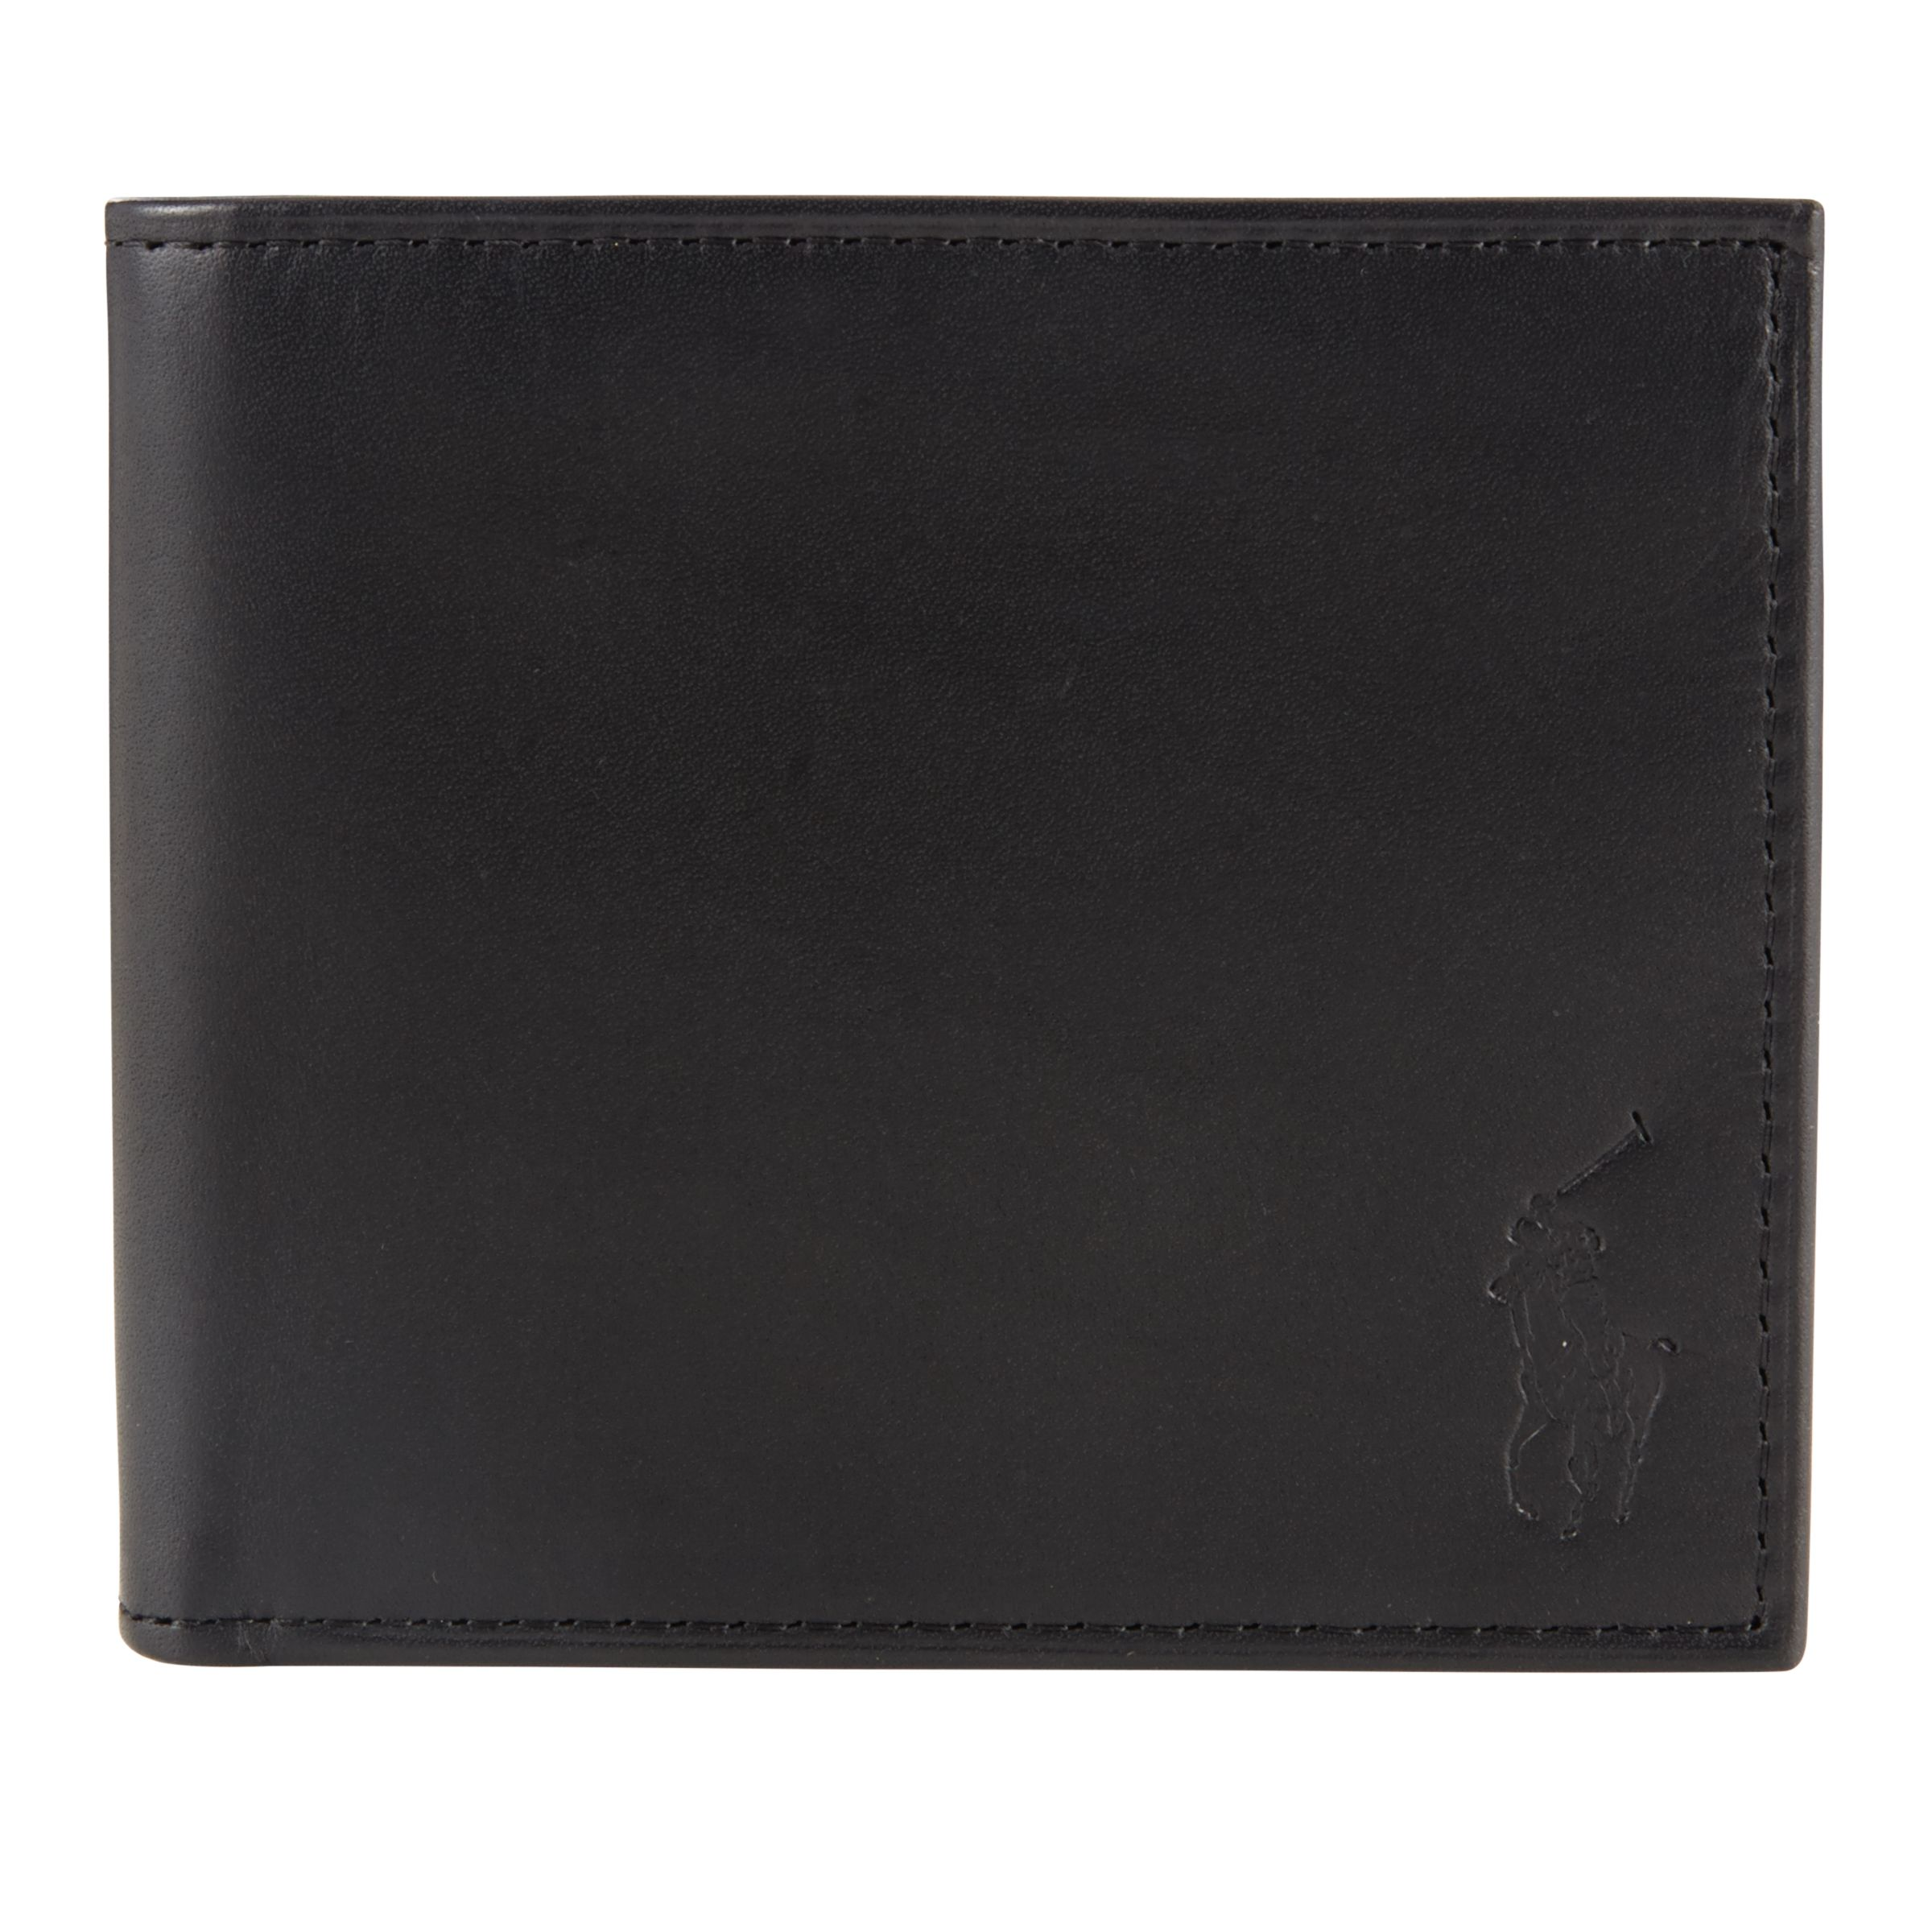 3cfd3e346505 Polo Ralph Lauren Leather Billfold Wallet at John Lewis & Partners